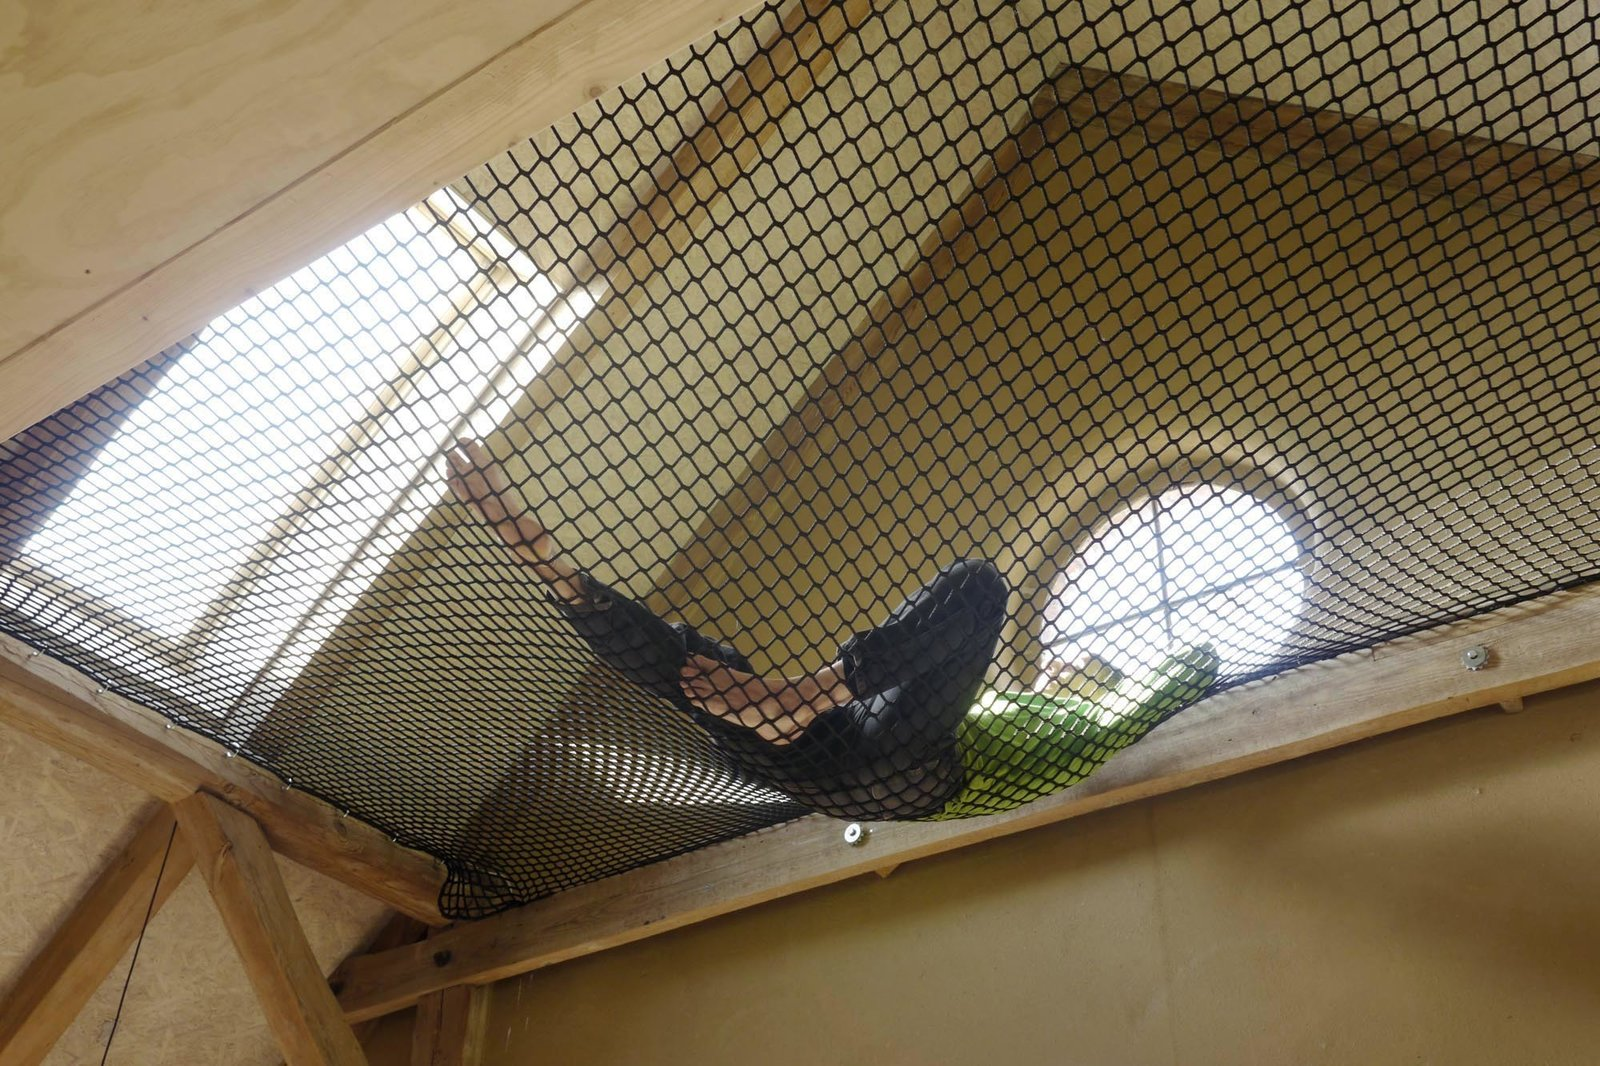 A hammock hung between beams, accessible from the mezzanine, provides a sunny spot to lounge. Rescuing a Historic Homestead, Two Artists Create a Rural German Retreat - Photo 4 of 10